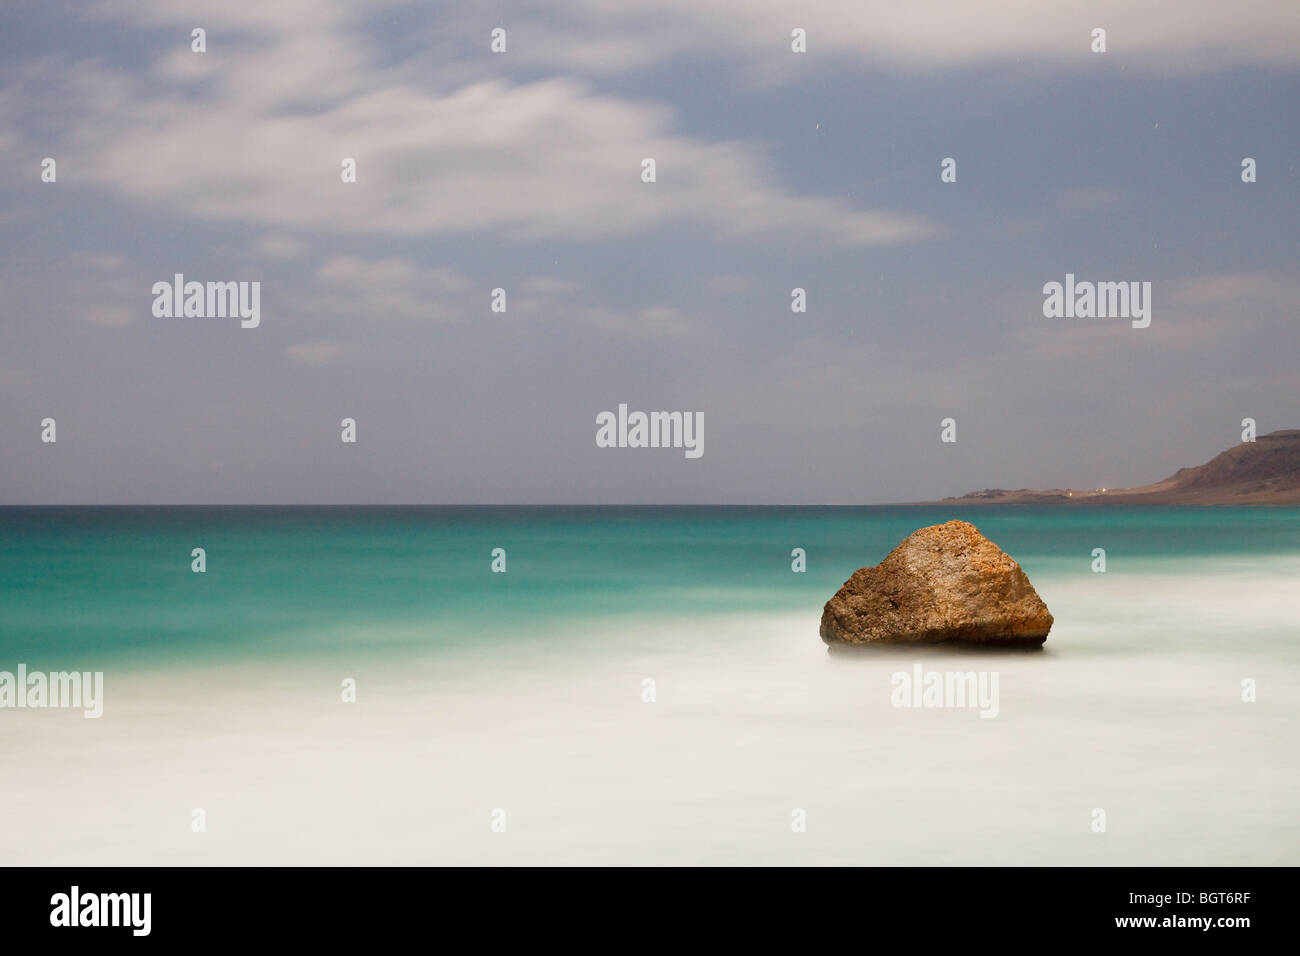 The coast at Arrarr by moonlight, Socotra Stock Photo